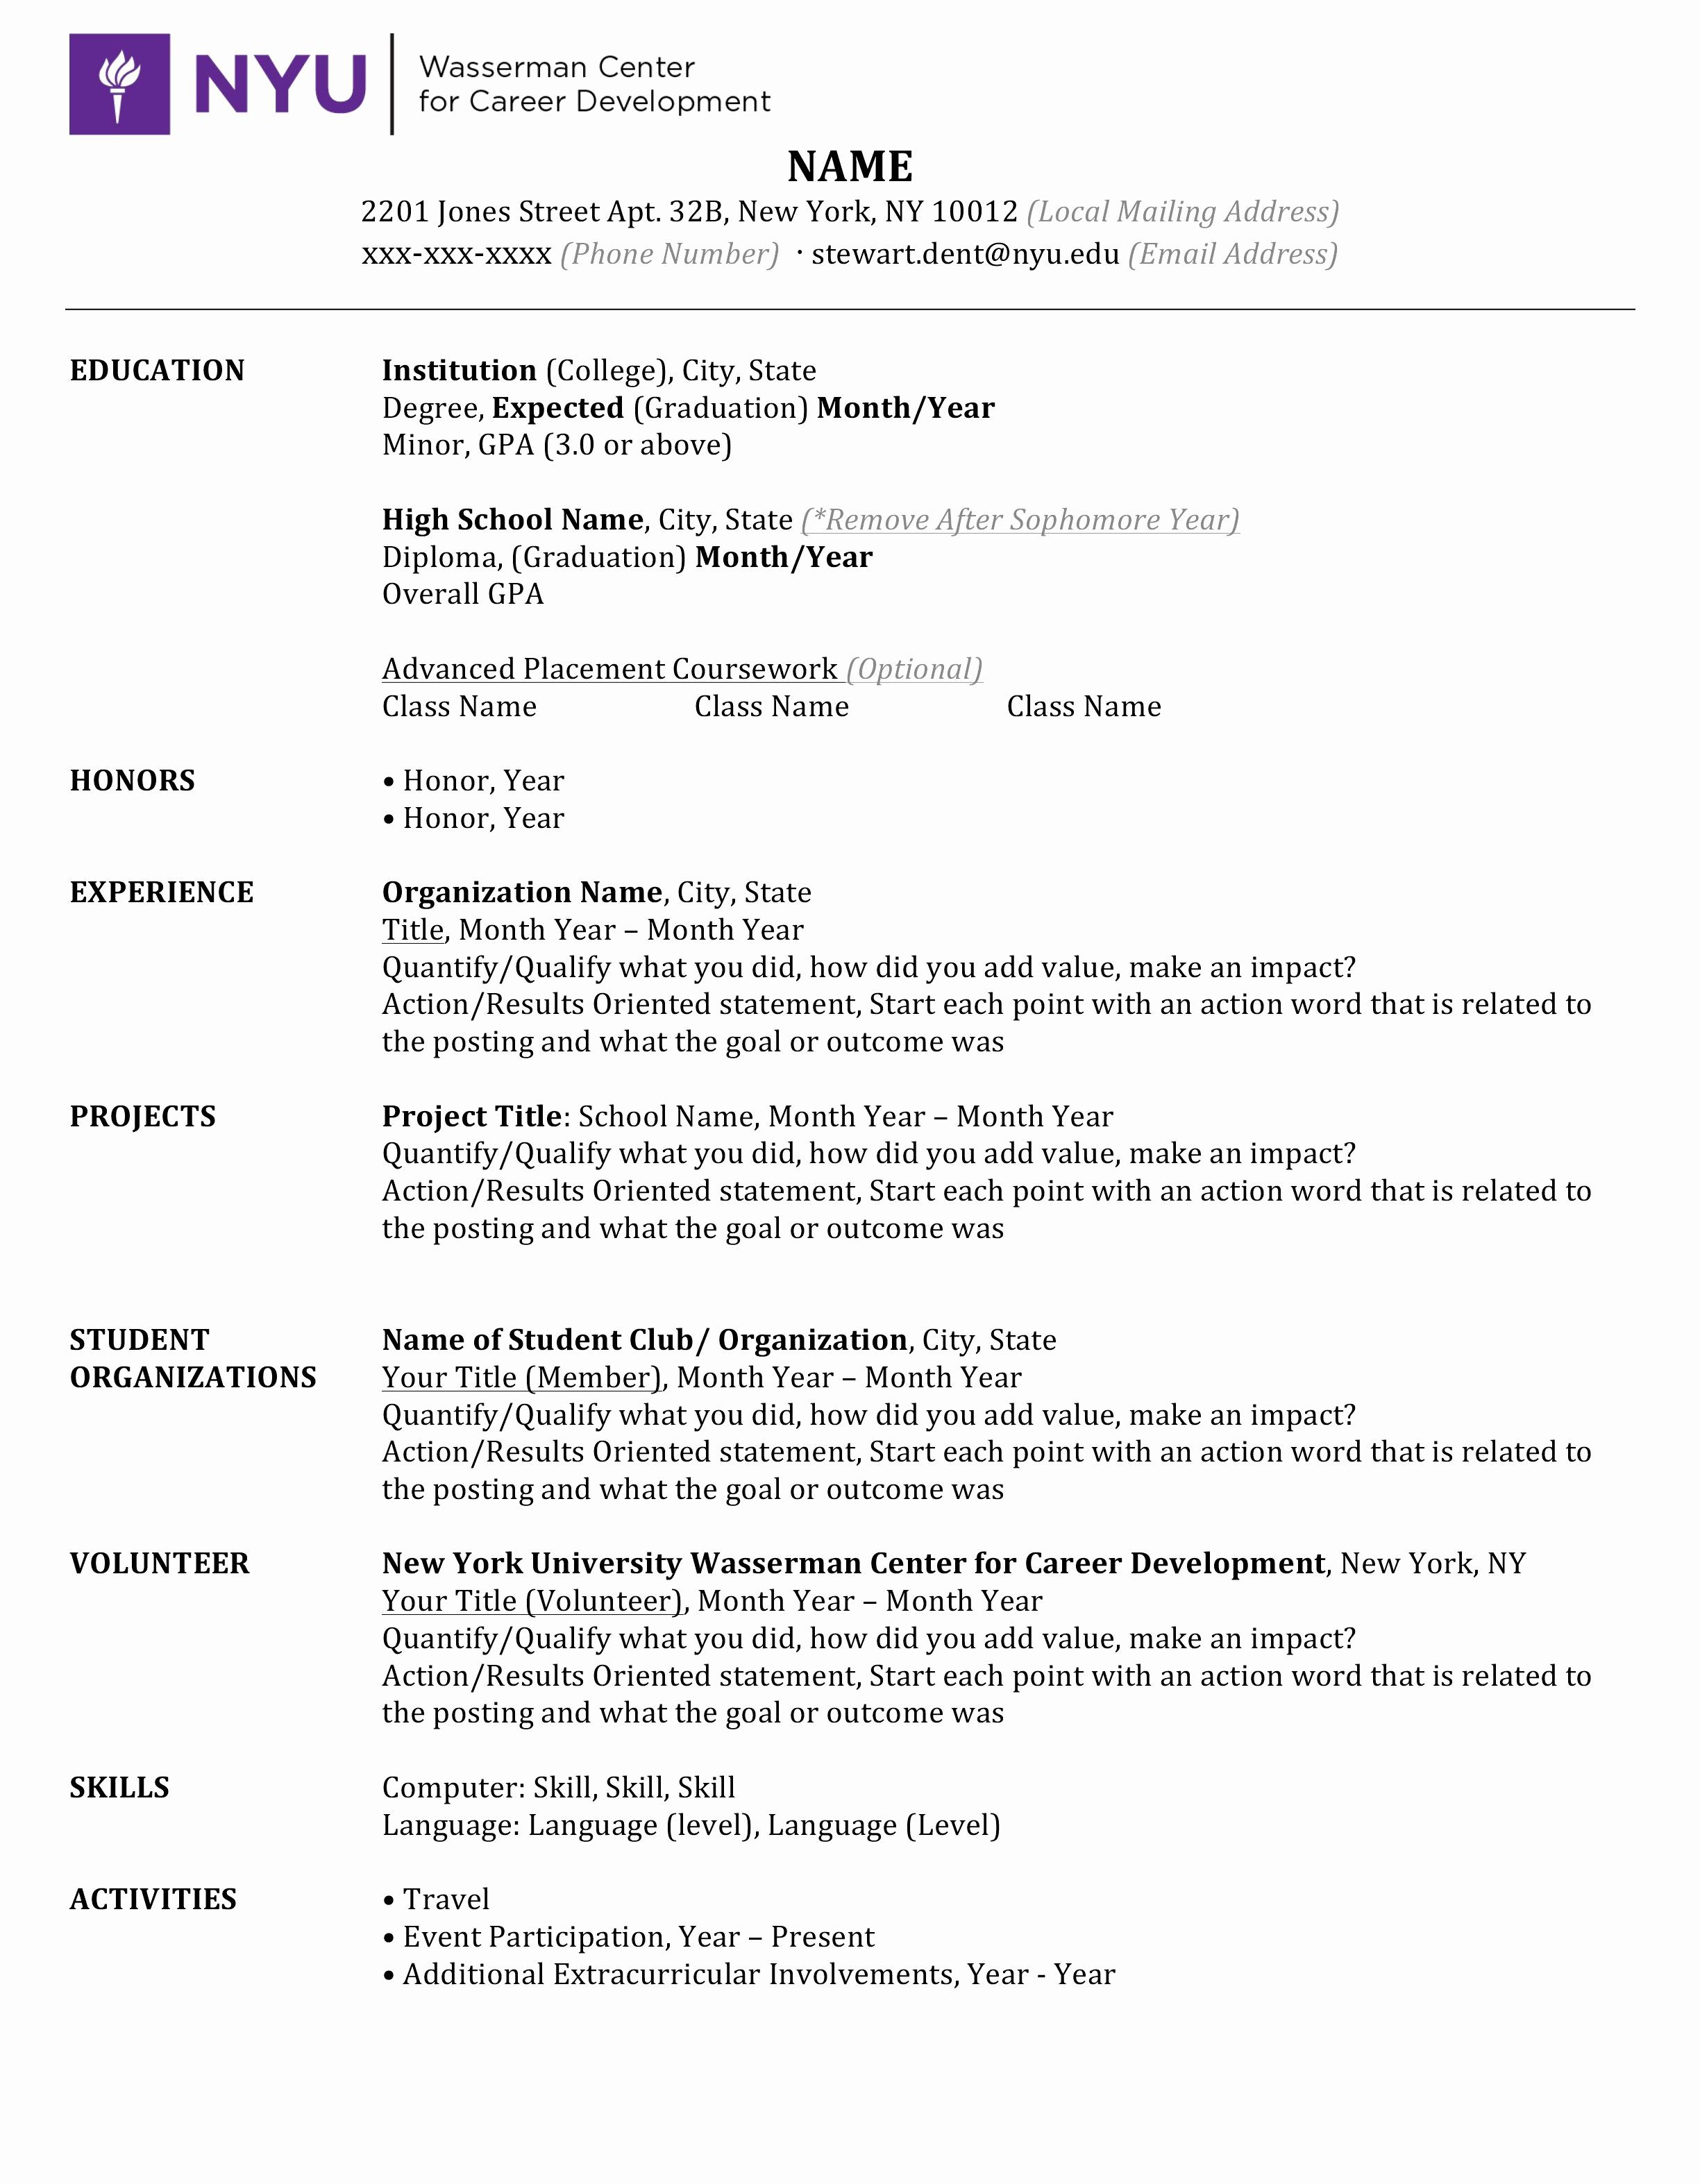 Help Desk Resume Template - Help Desk Cover Letter Template Collection